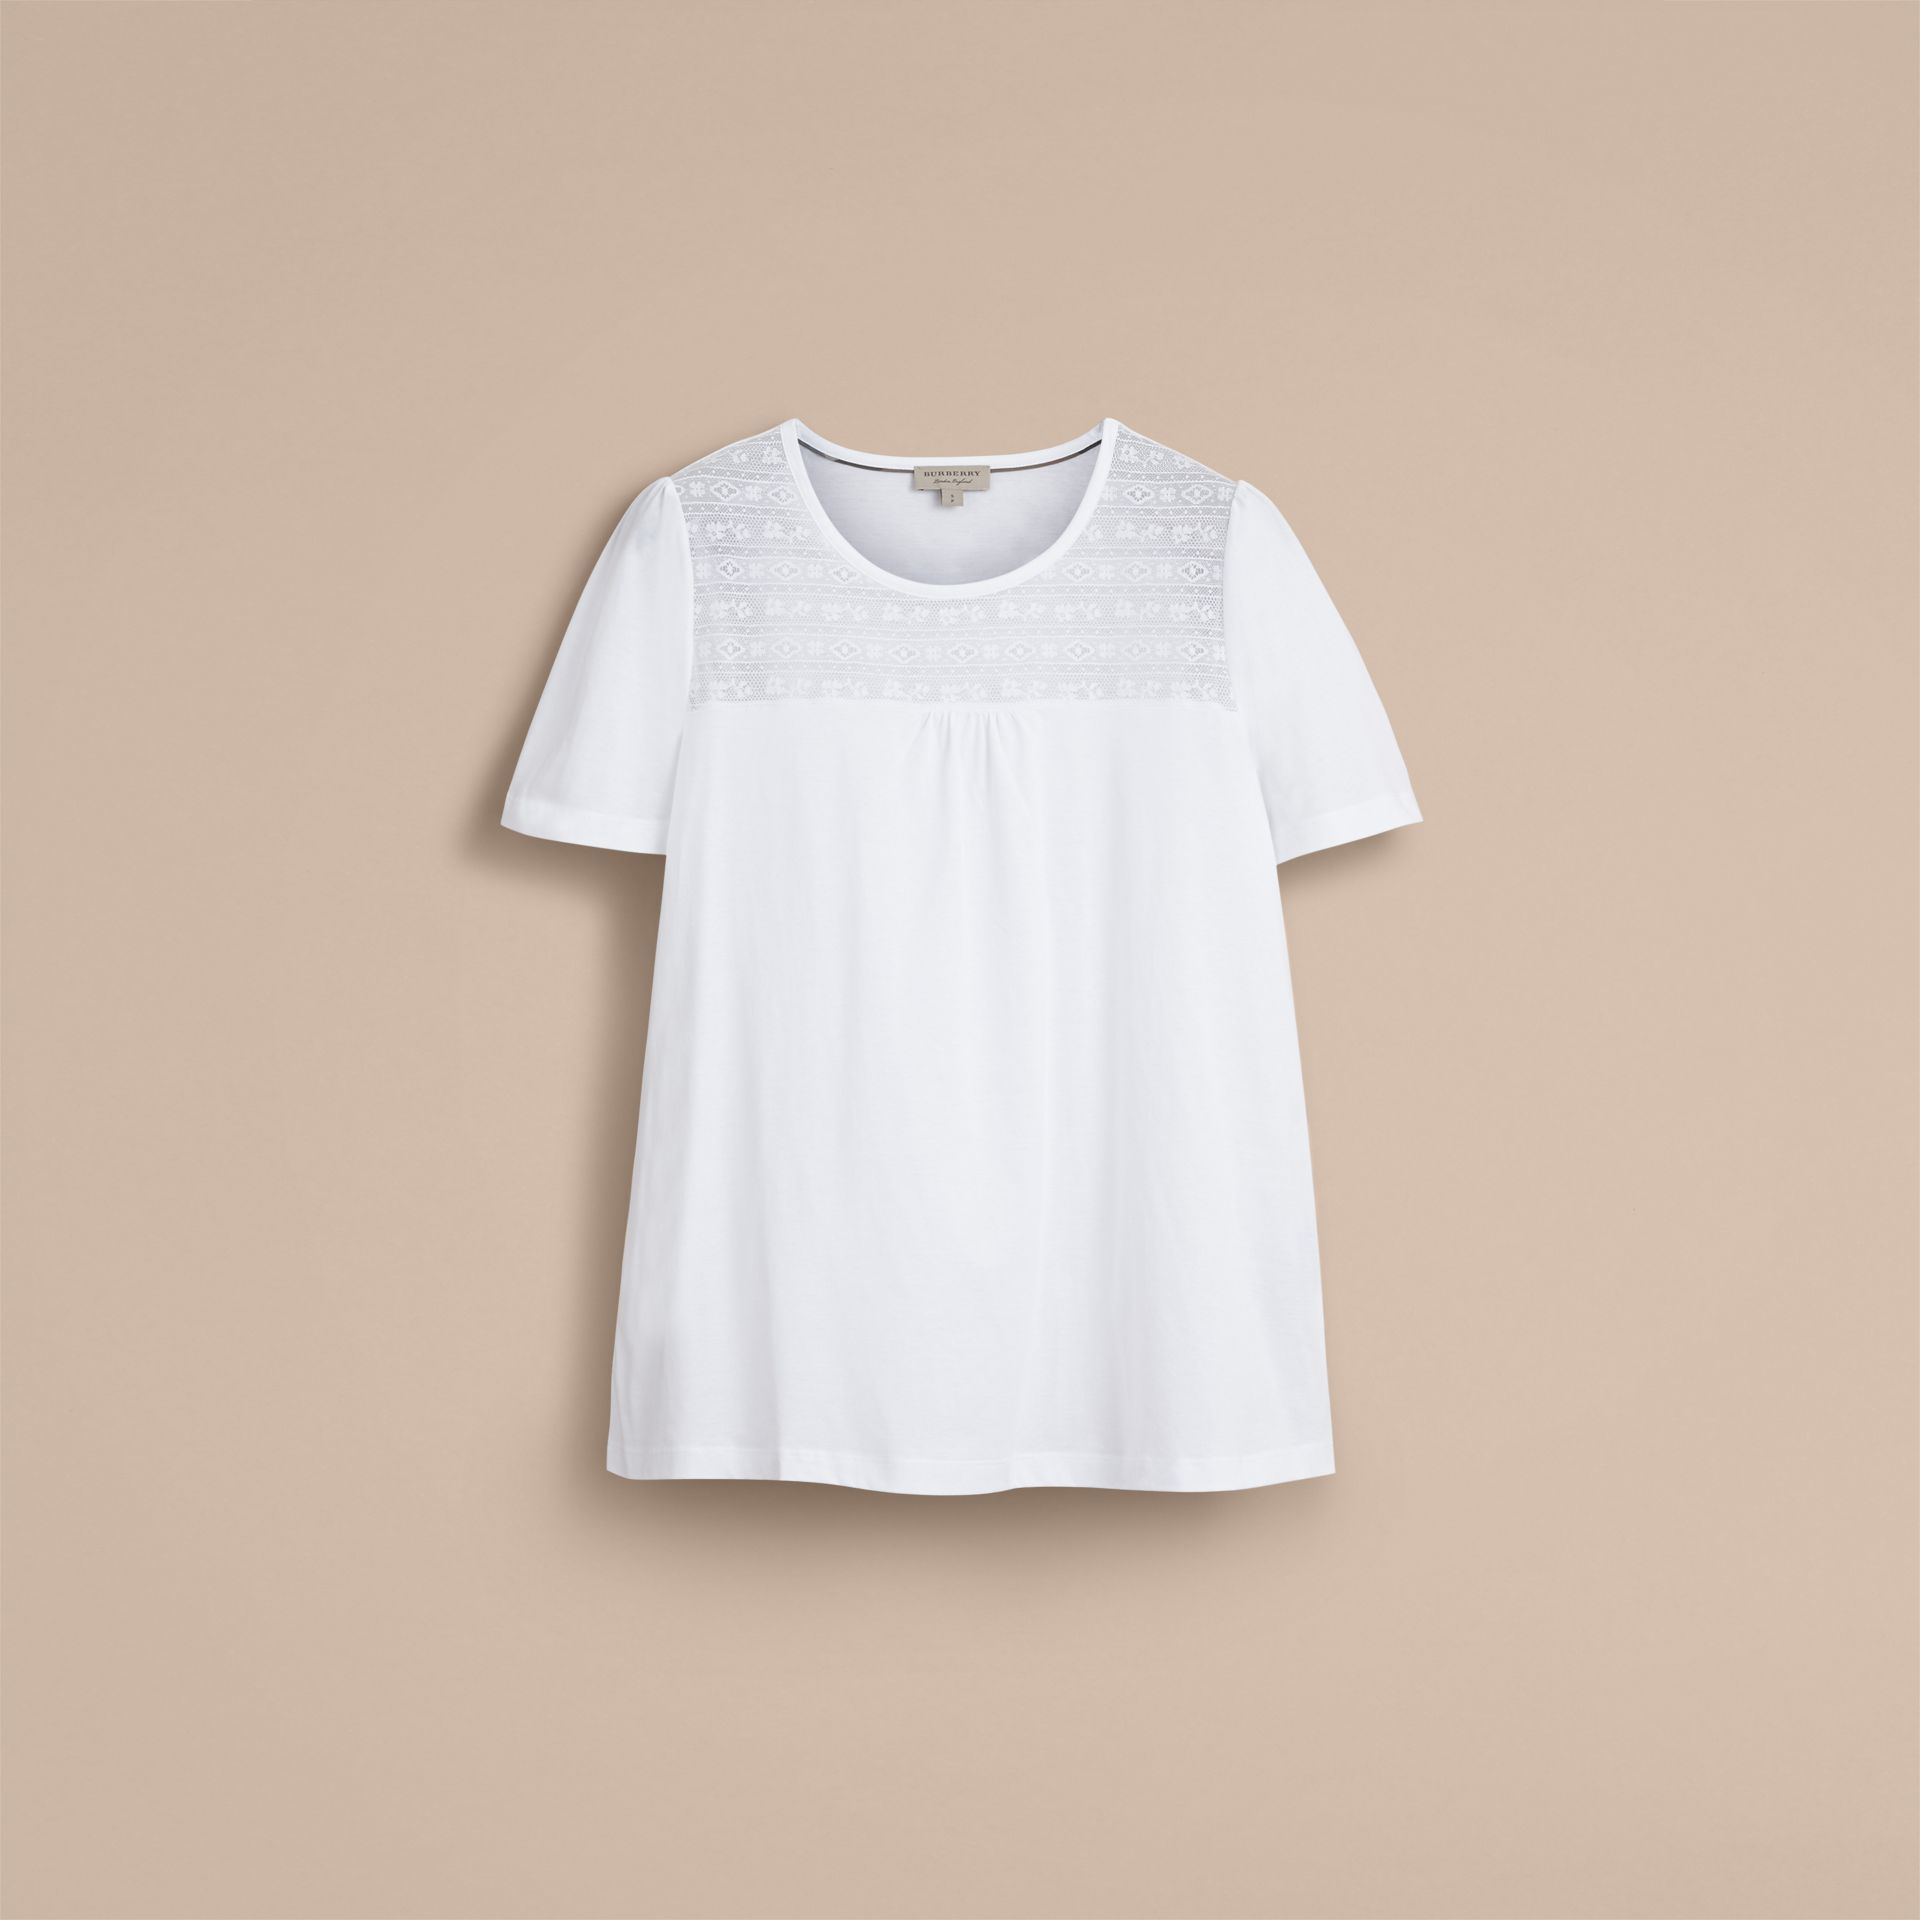 Lace Panel Cotton T-shirt in White - Women | Burberry - gallery image 4